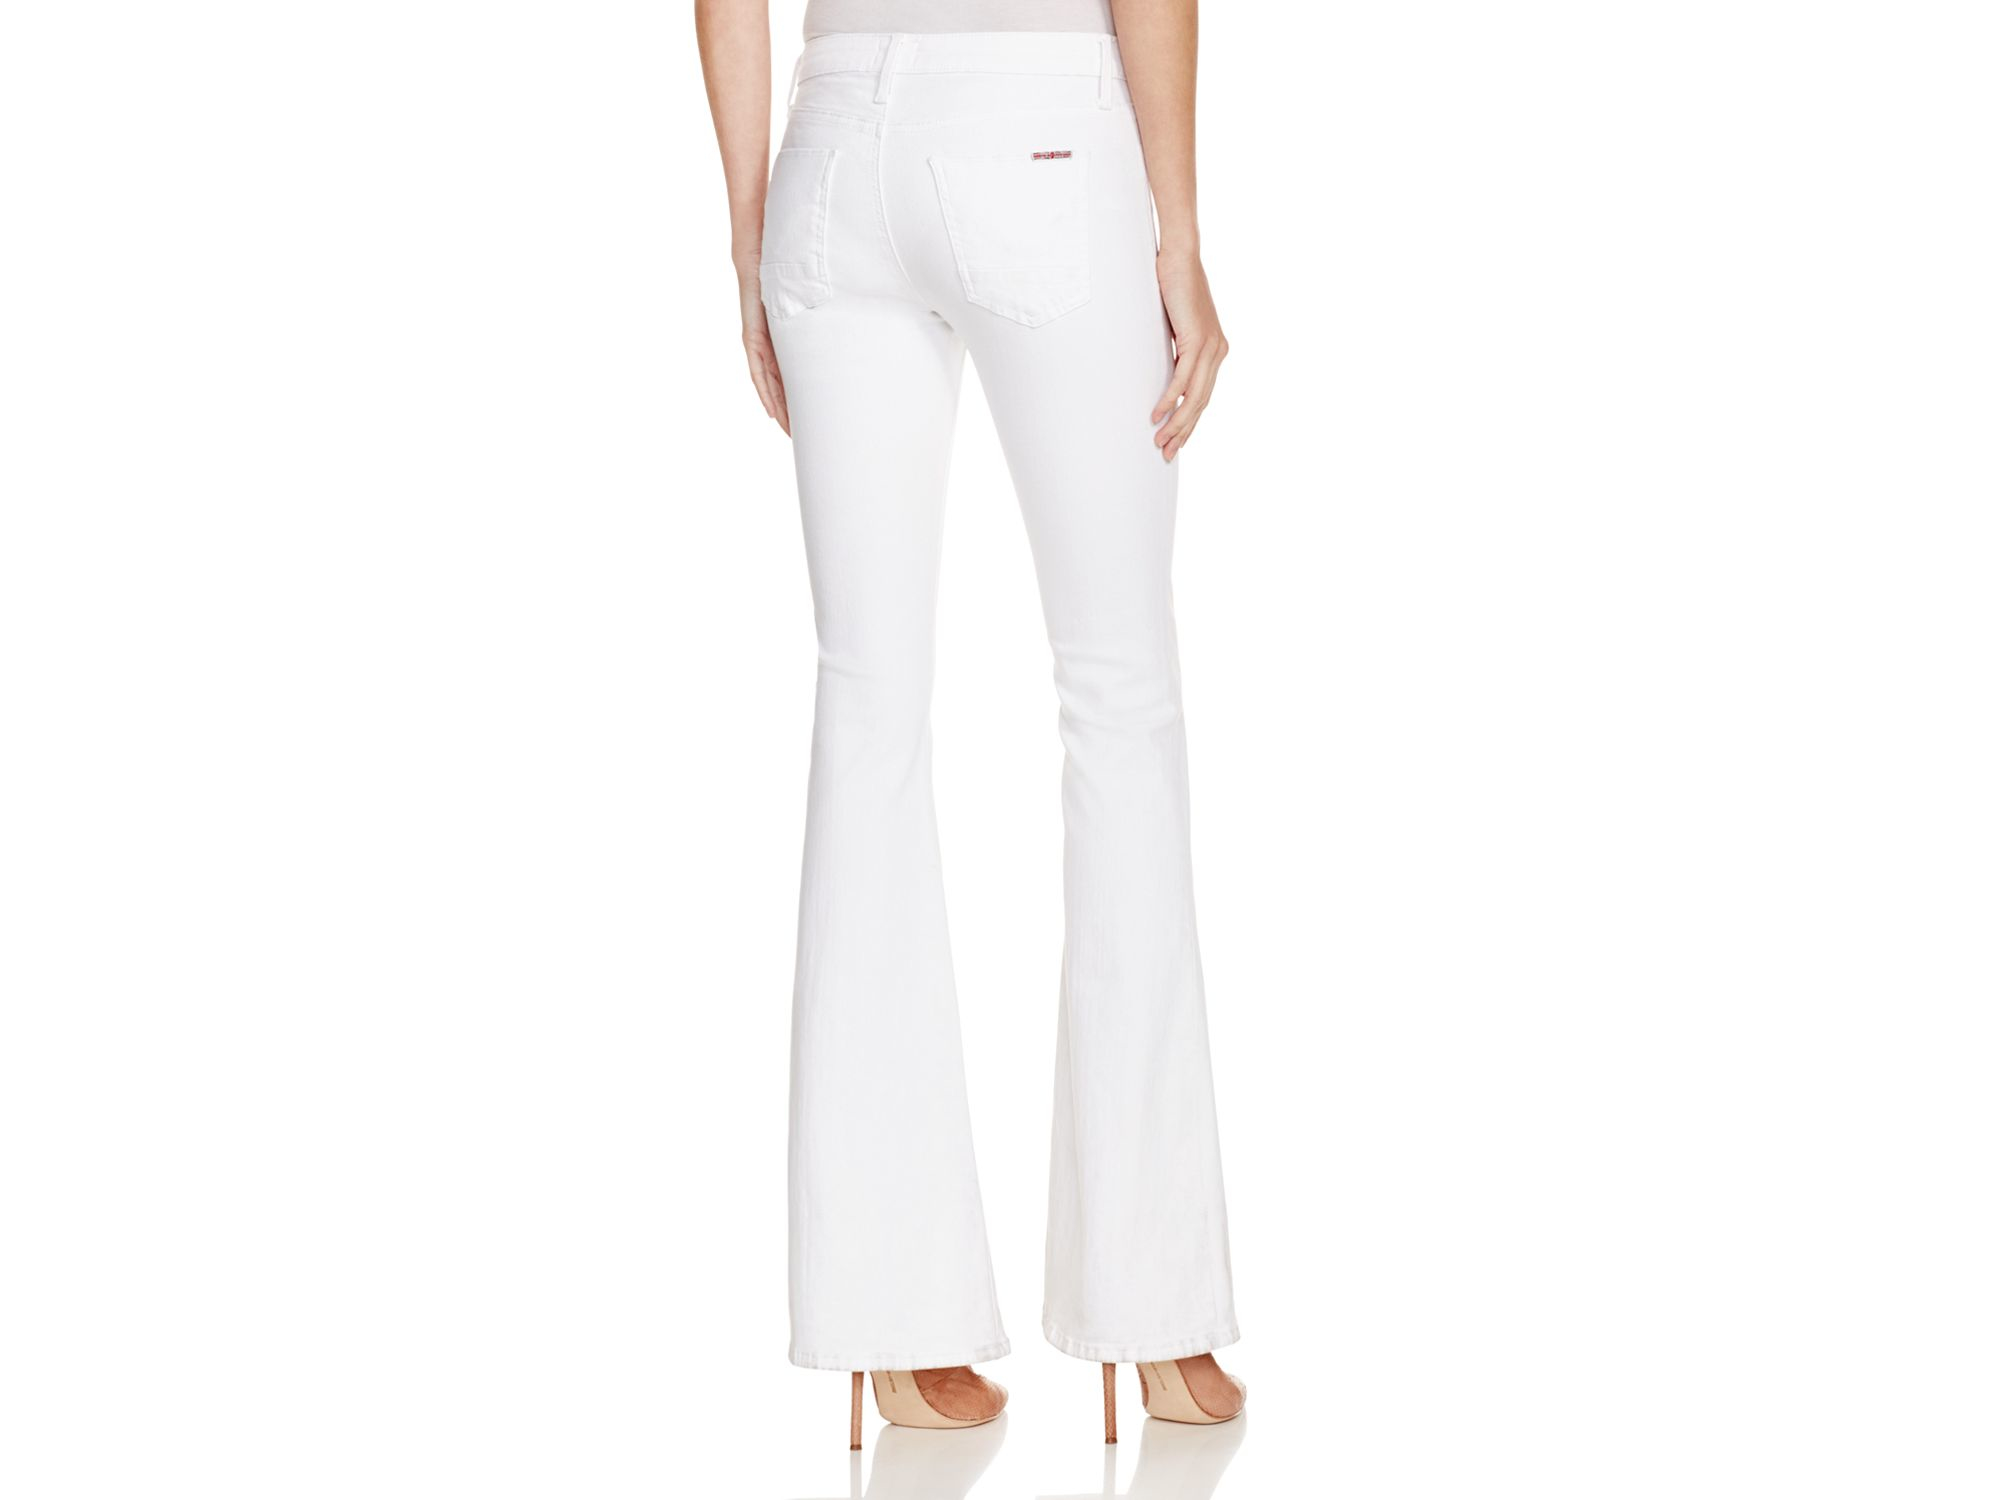 Hudson jeans Mia Petite Flare Jeans In White in White | Lyst